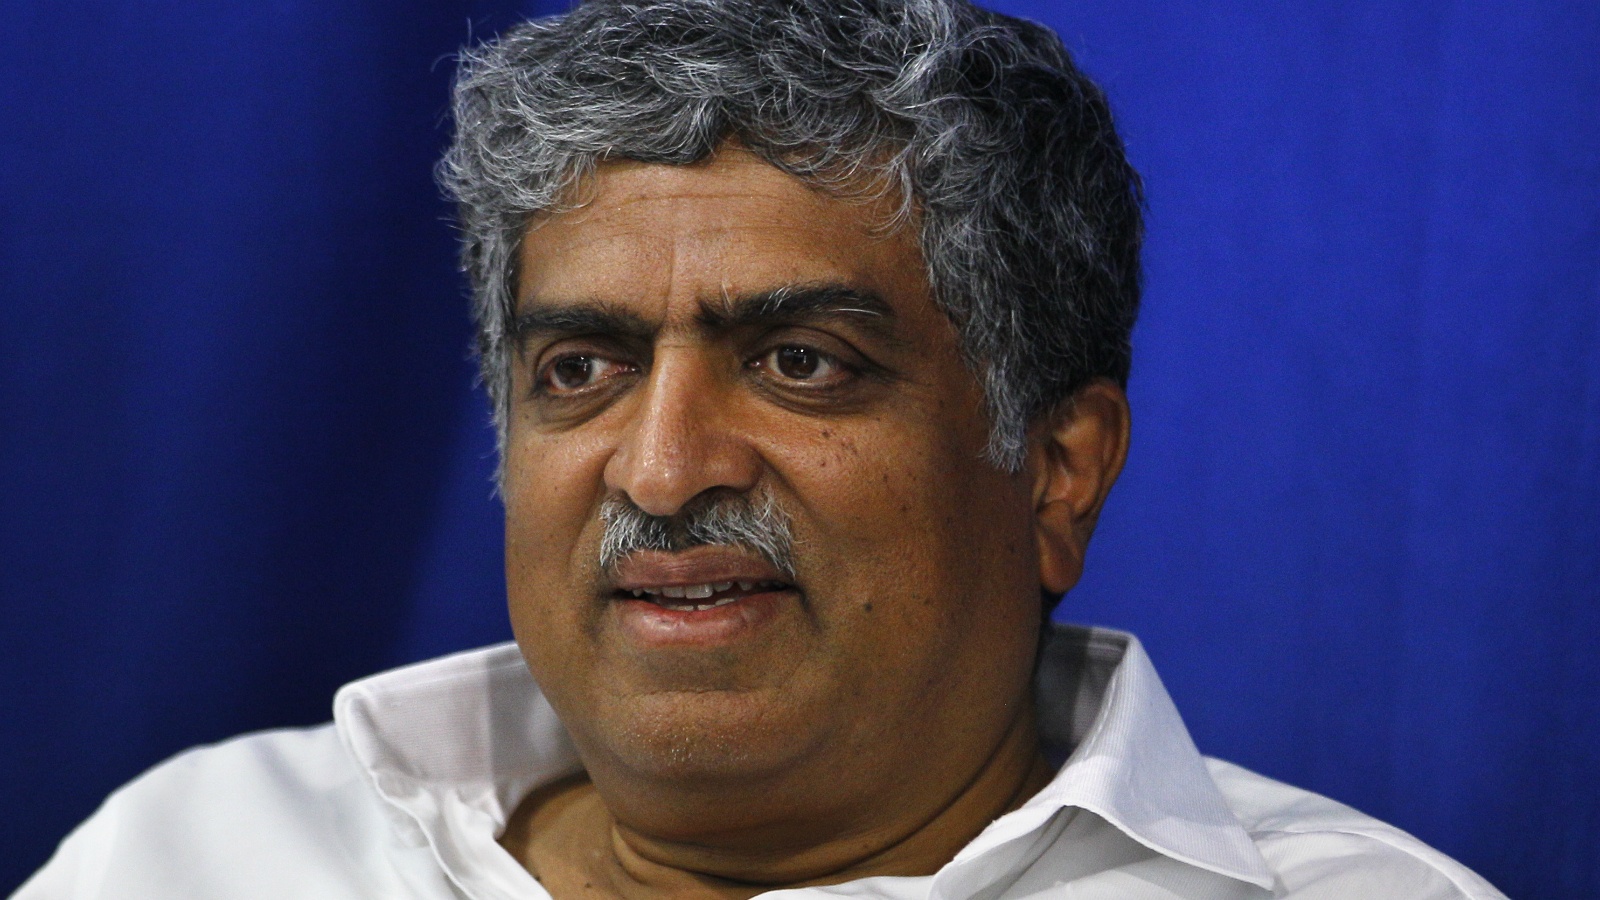 India's ruling Congress party candidate and former Chairman of Unique Identification Authority of India Nandan Nilekani attends a function at an old age home on the last day of election campaigning of his constituency in Bangalore, India, Tuesday, April 15, 2014. Nilekani is the richest candidate so far in the elections with his declared assets worth INR 77 billion (USD$ 1,277,032,465). The multiphase voting across the country runs until May 12, with results for the 543-seat lower house of parliament announced May 16.